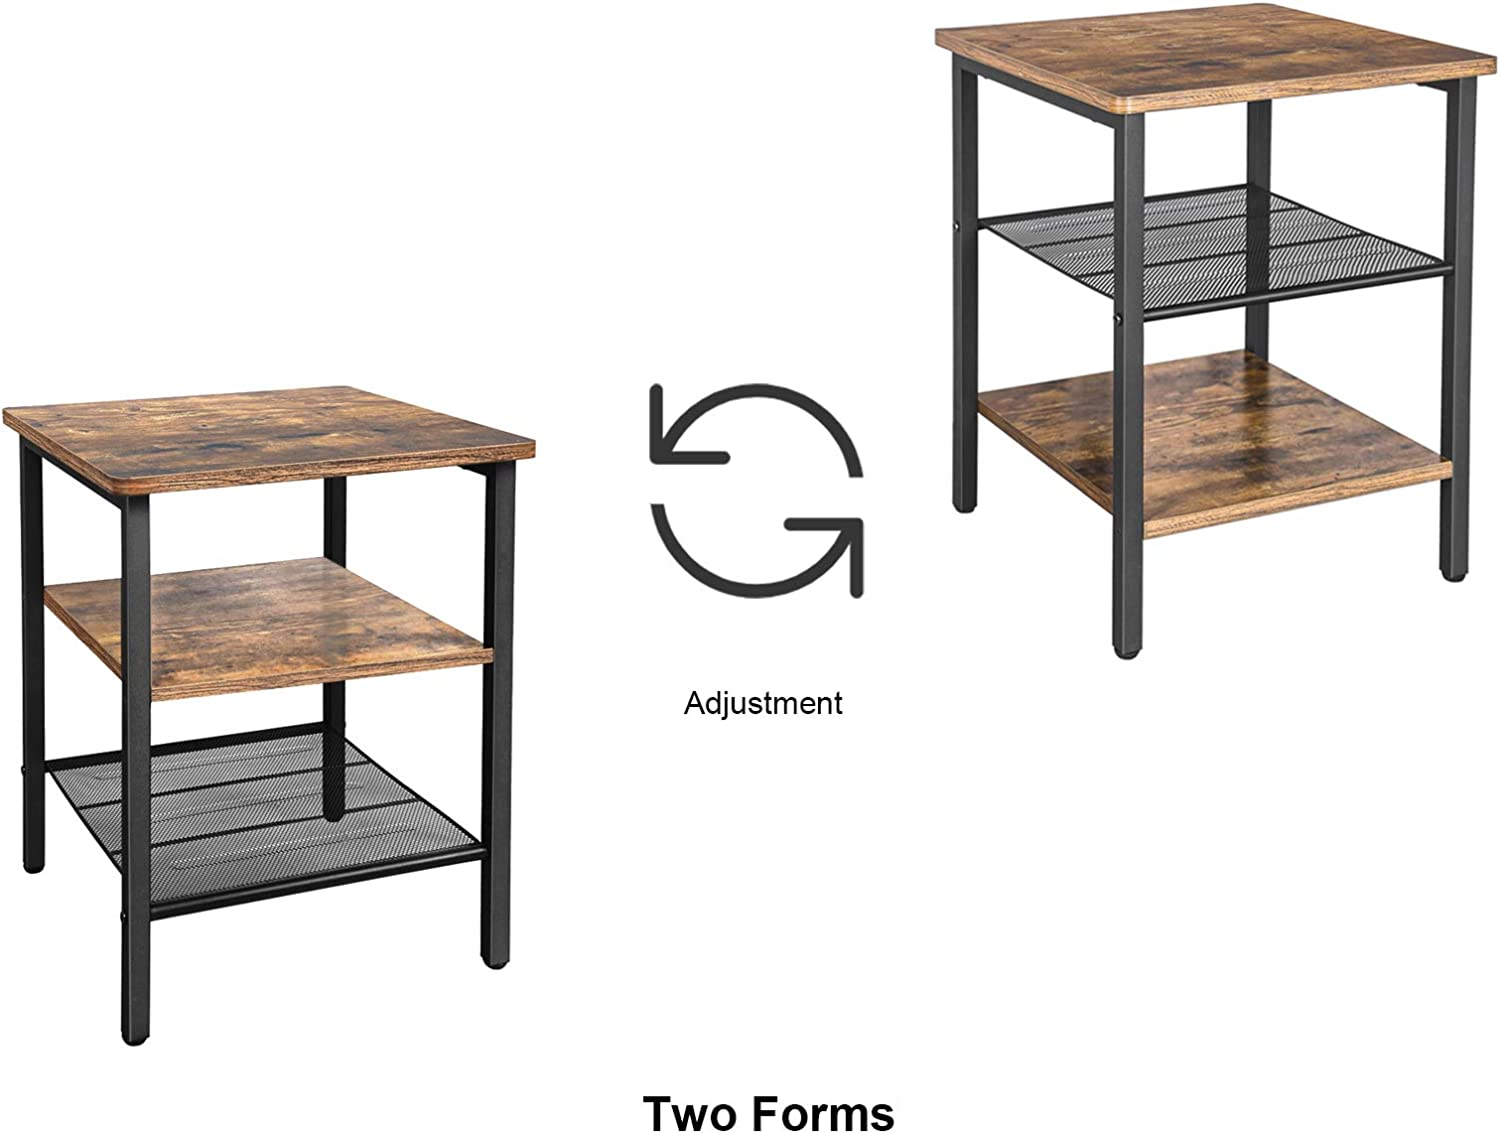 BEEWOOT End Table,Industrial Nightstand,Side Table with Storage Shelf for Living Room, Bedroom, Stable Metal Frame and Easy Assembly,Rustic Brown TB01BB002: Kitchen & Dining